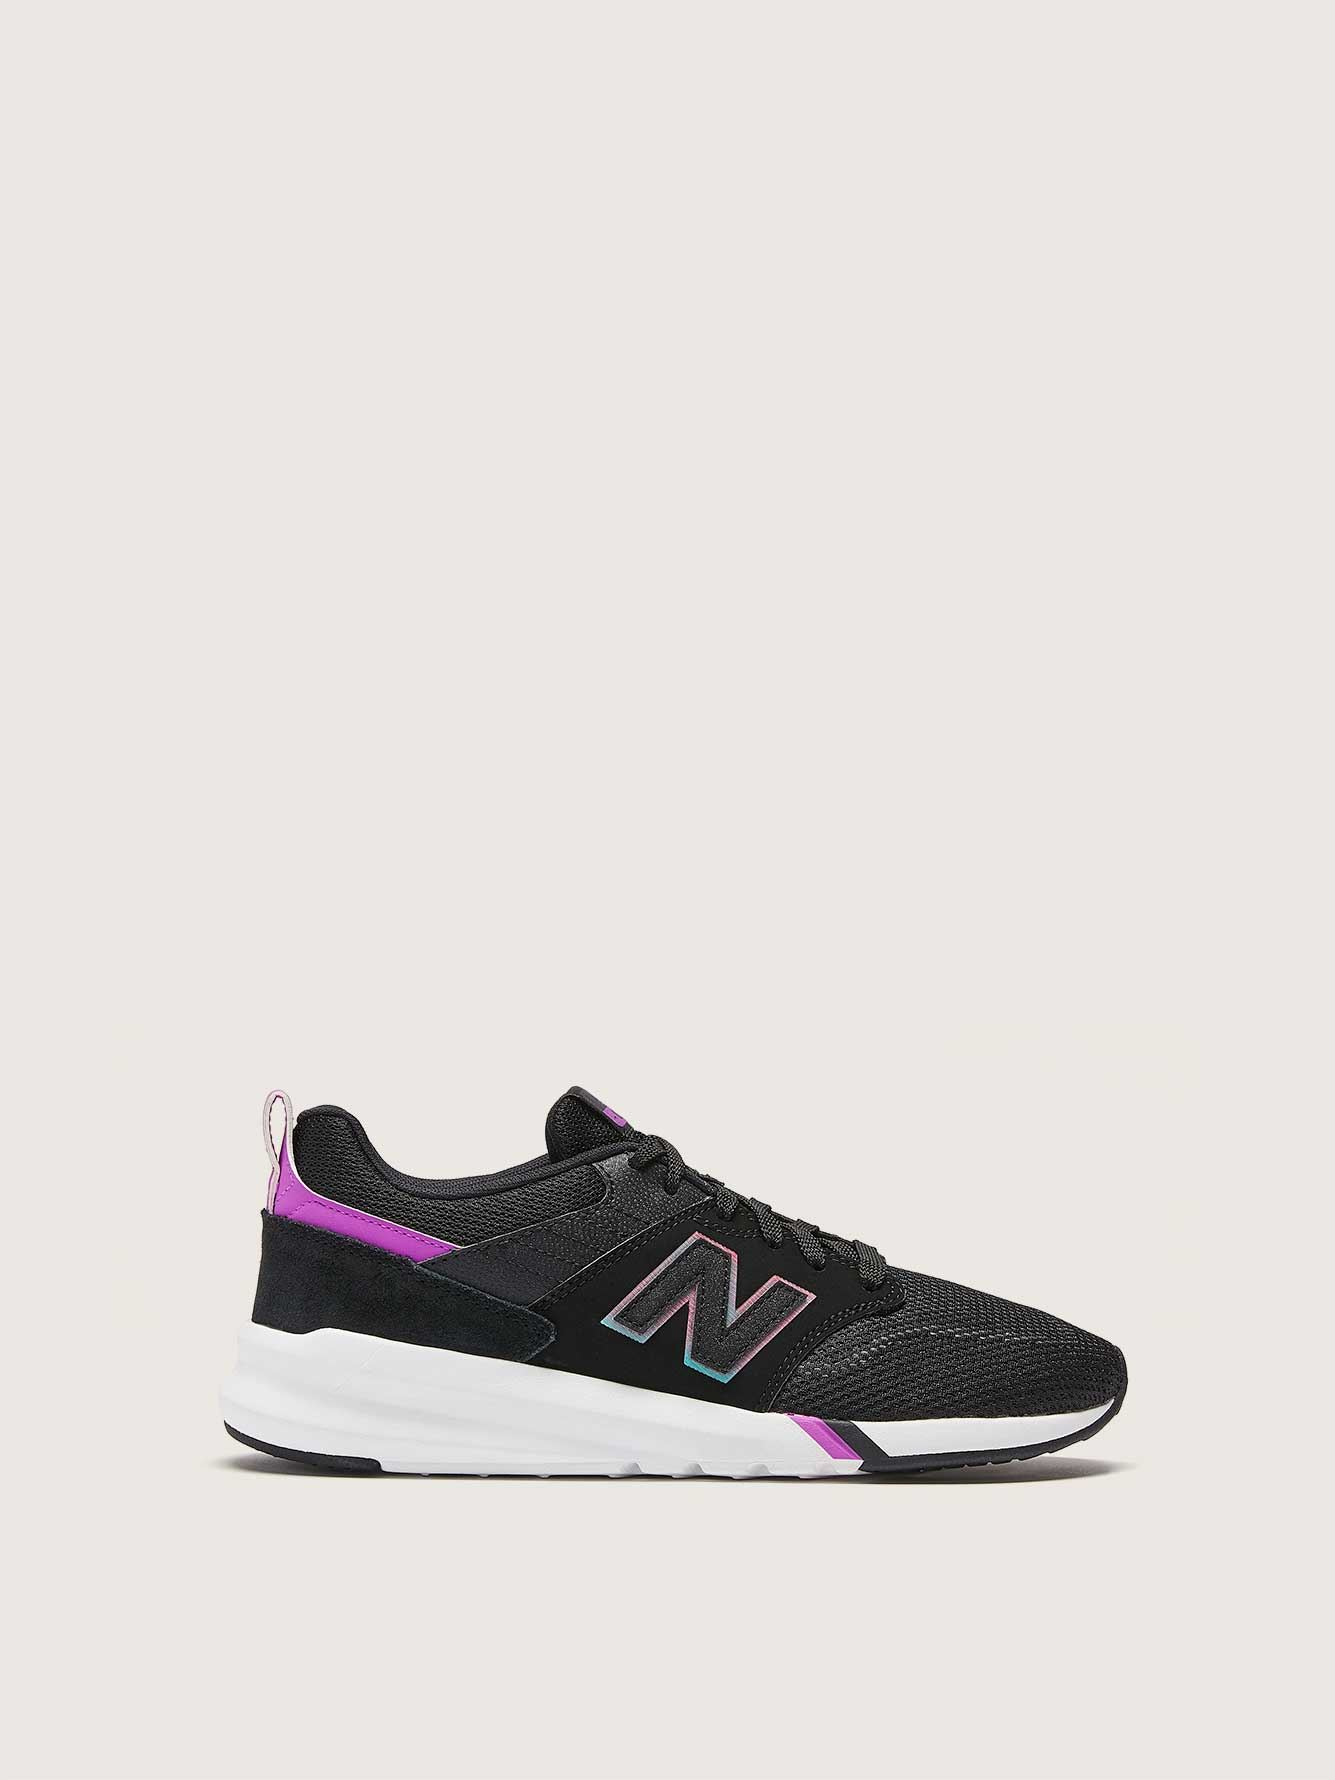 low priced 4ea07 7a6be New Balance, Classic Retro - Wide Width Sneakers